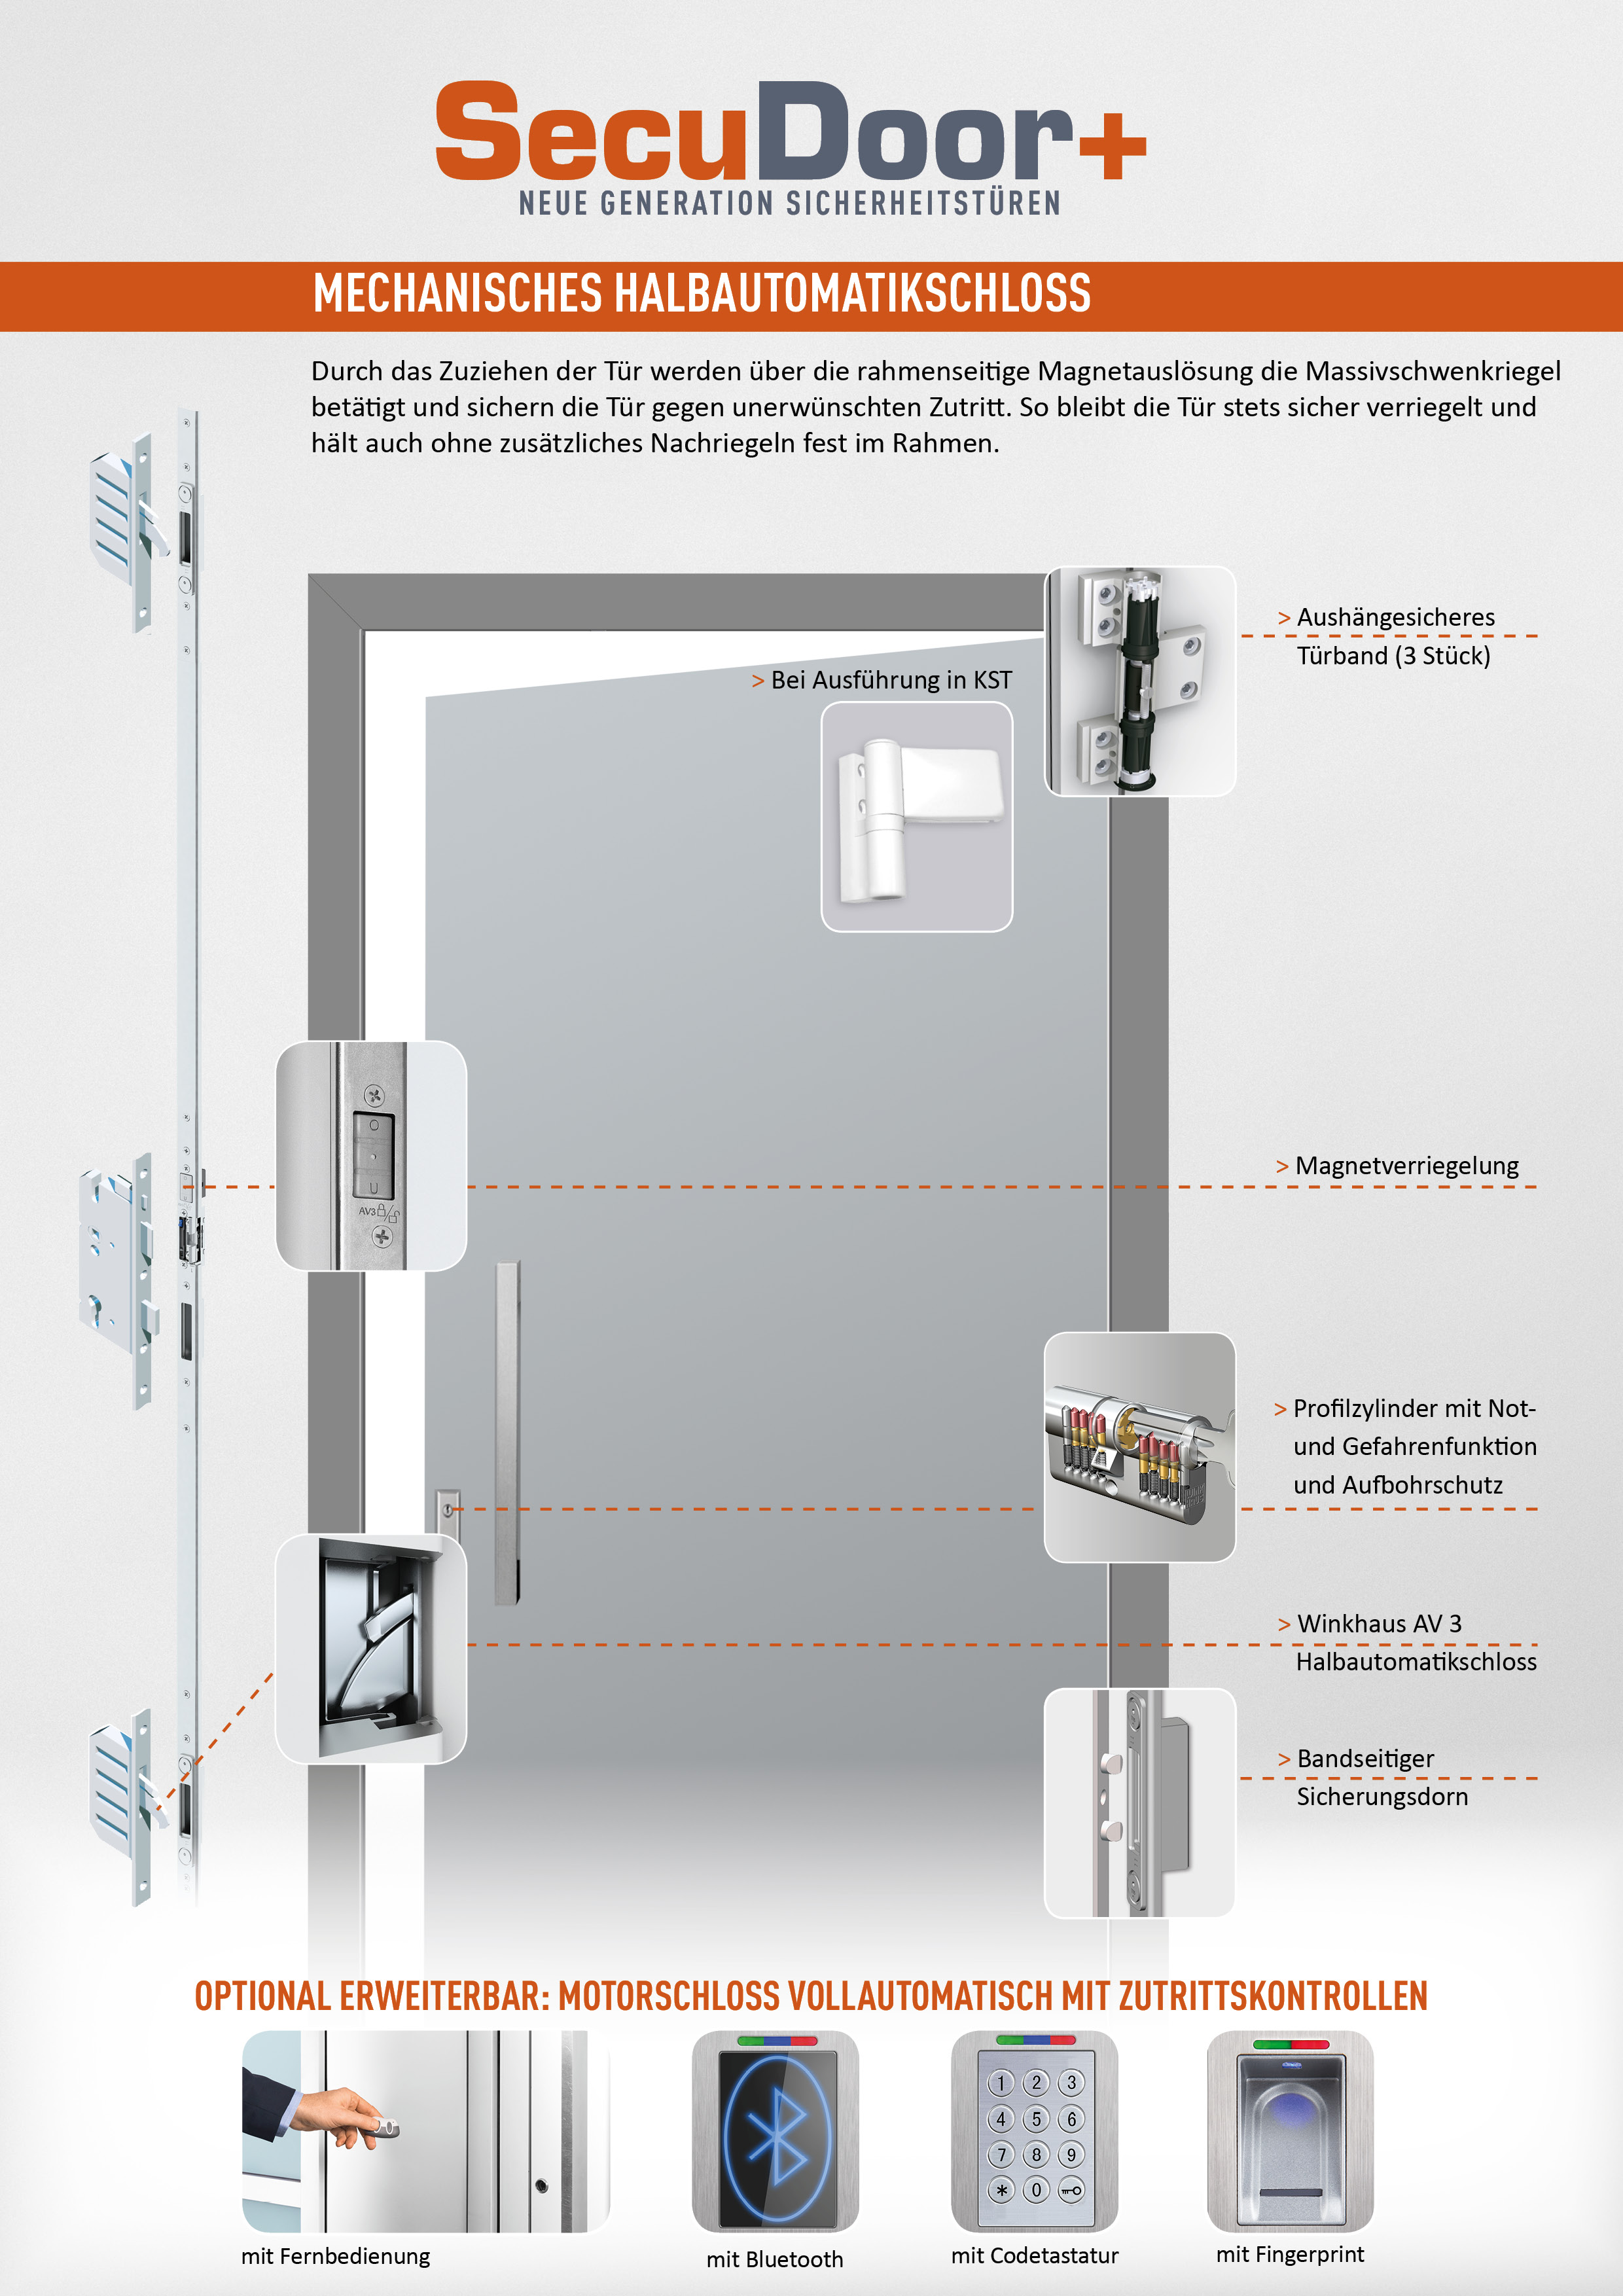 SecuDoor Plus Features